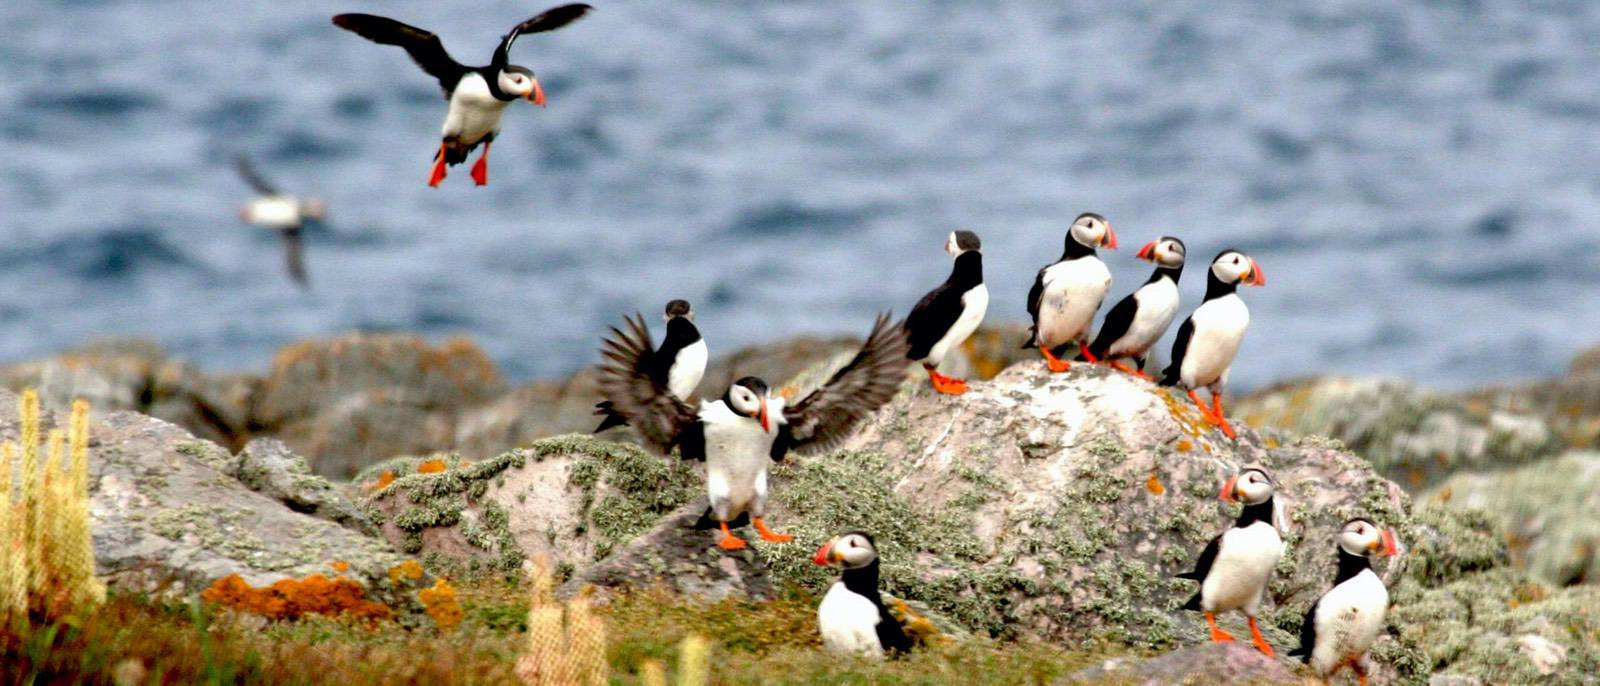 puffins_returning_to_burhou_in_larger_numbers-image-copyright-Alderney-Wildlife